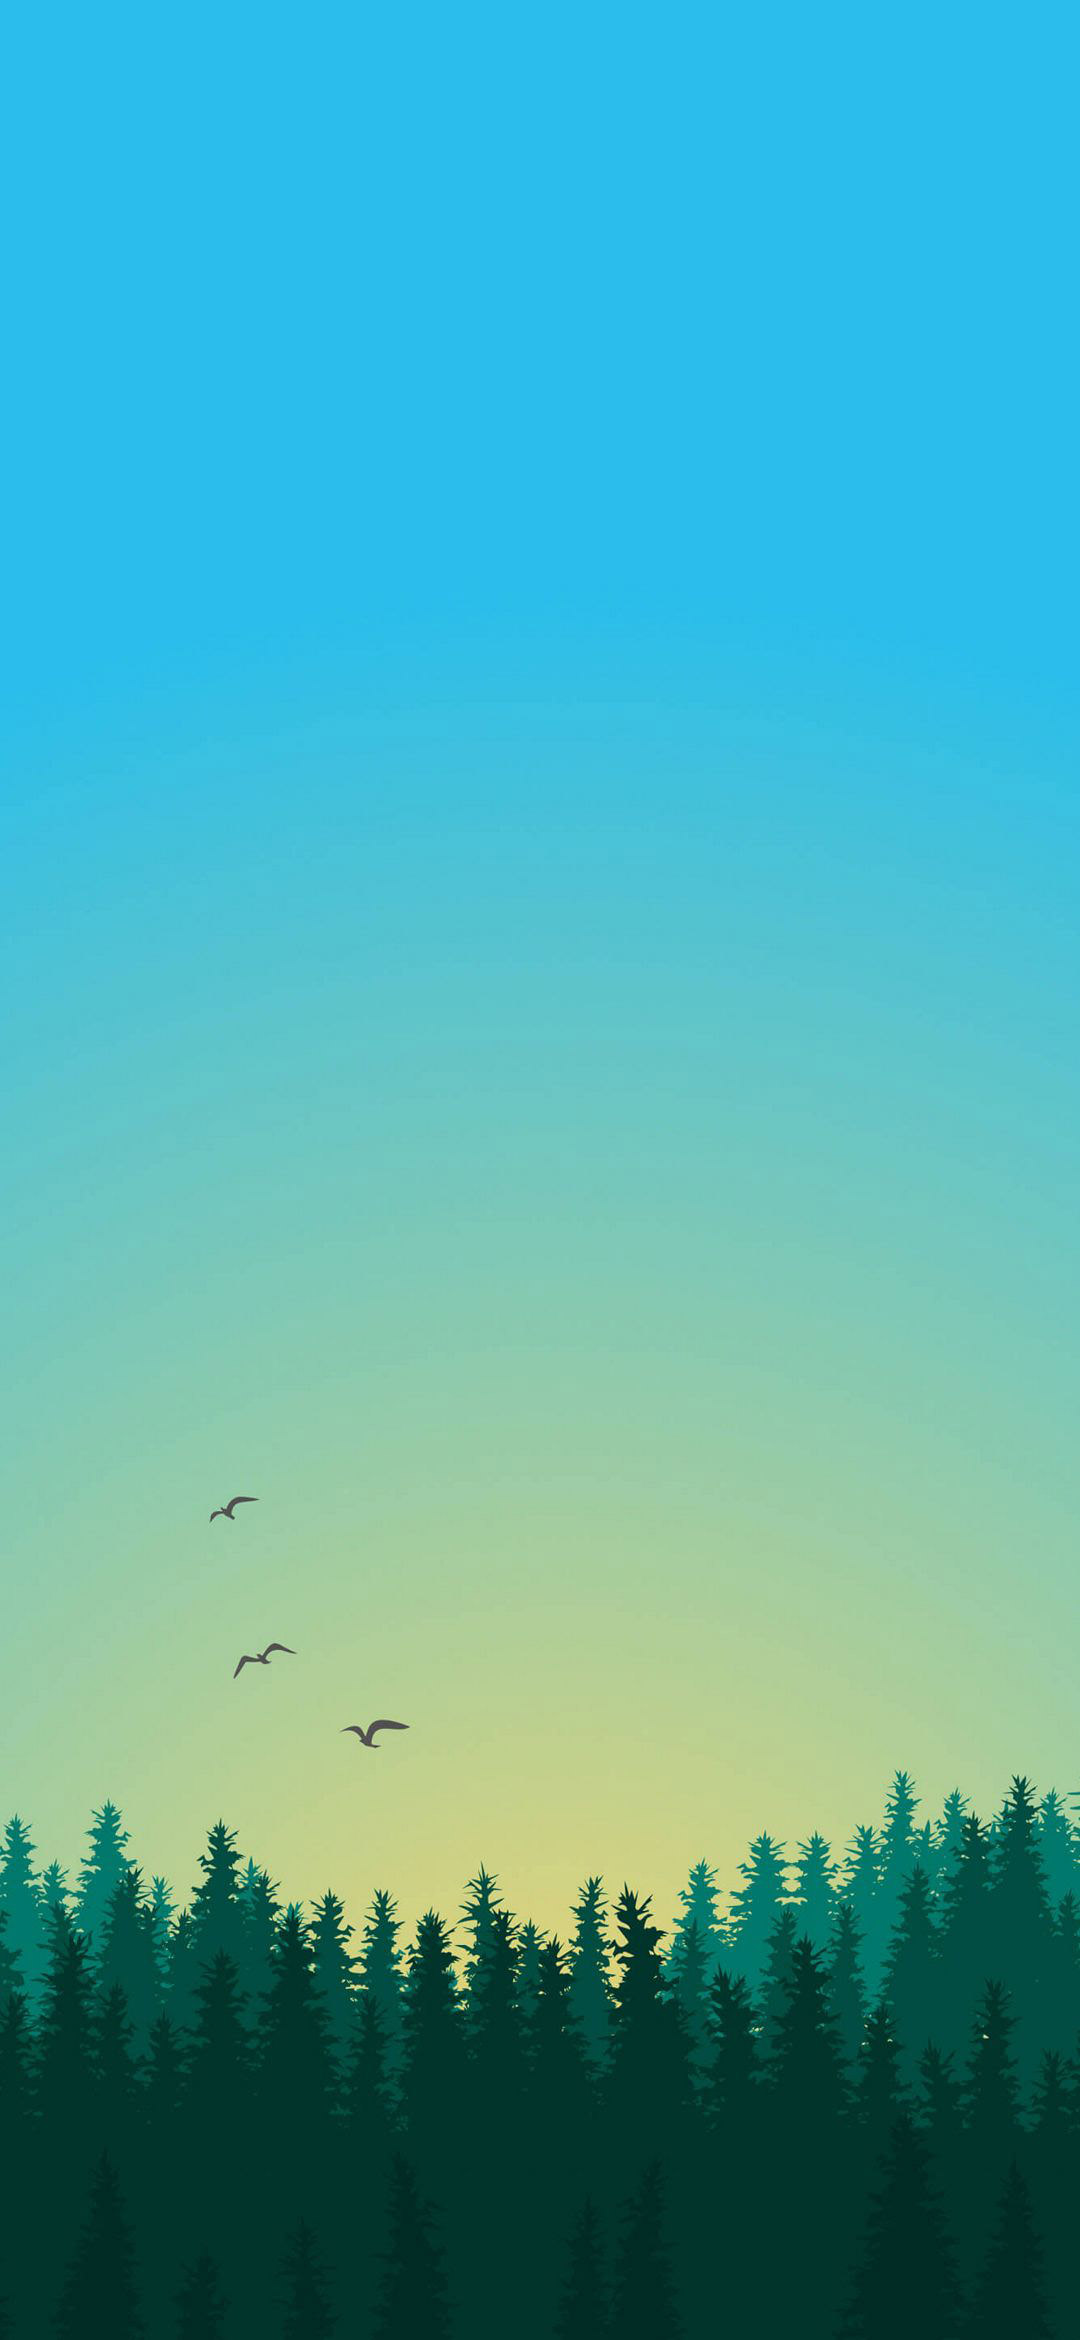 30+ Minimalist Mobile Wallpapers (2021 ...